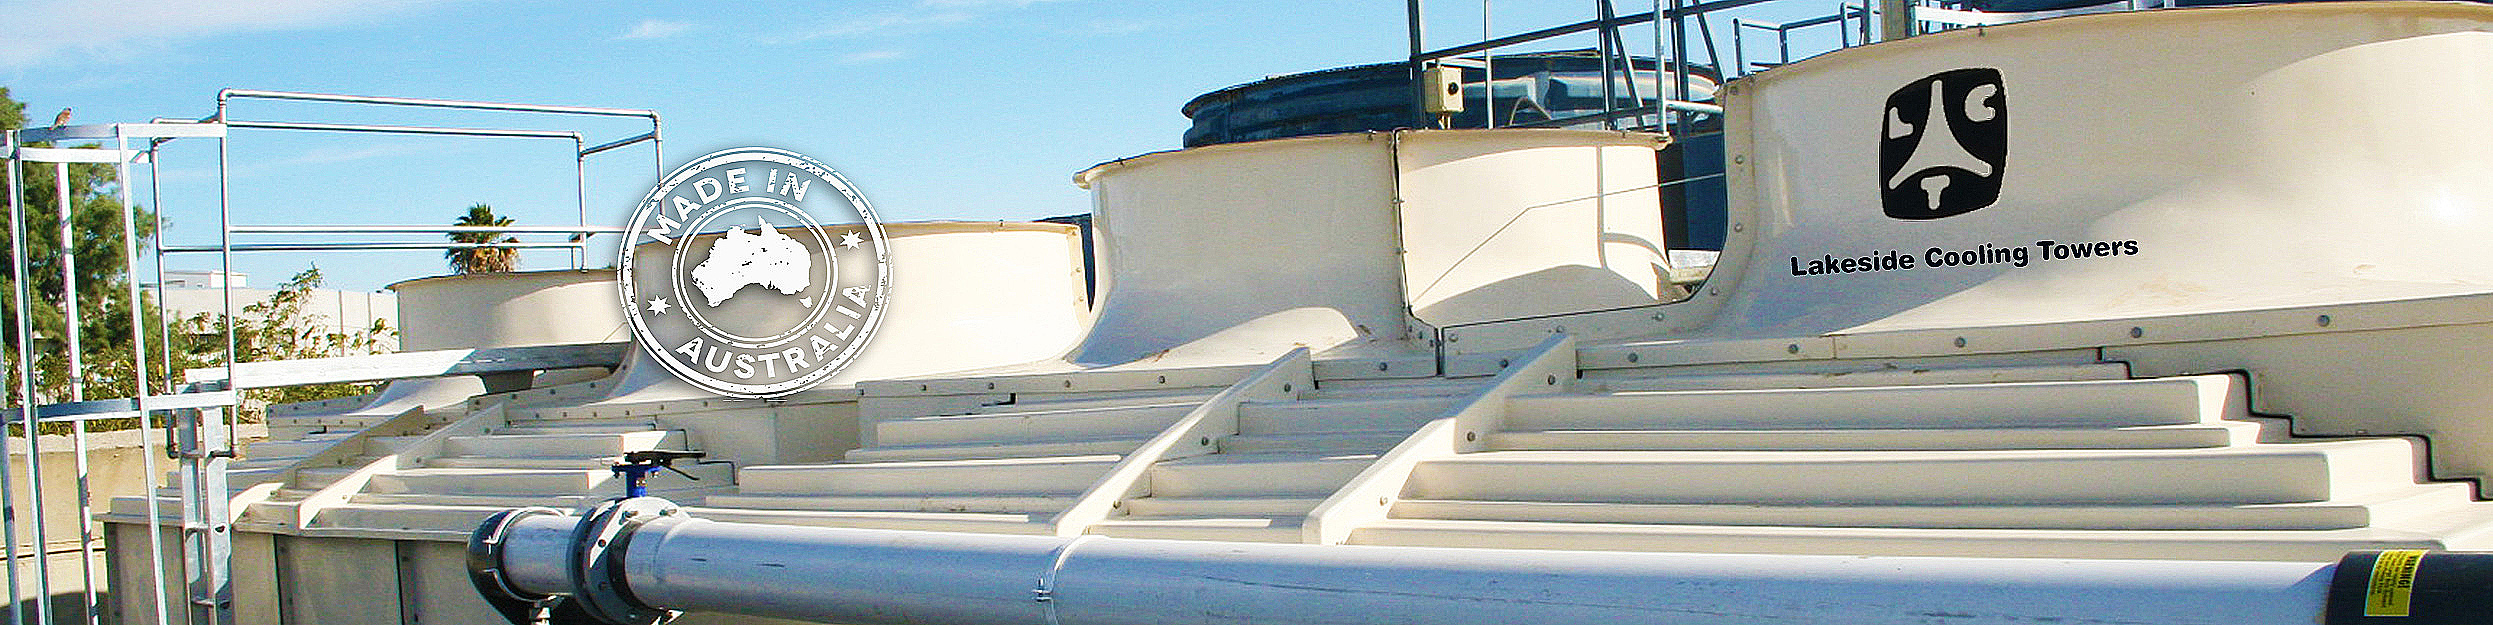 Lakeside Cooling Towers (Australasia) Pty Ltd